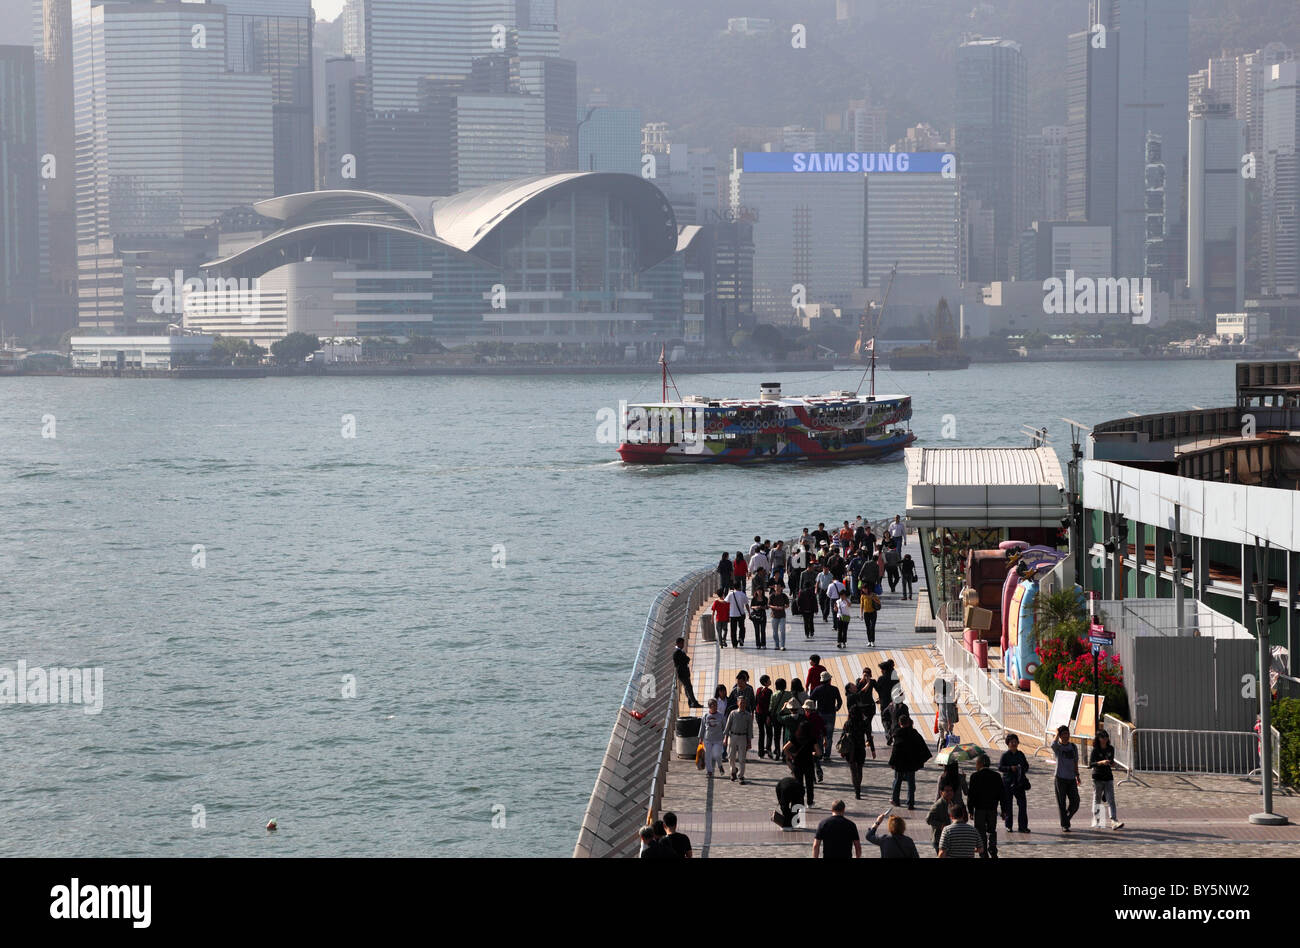 People walking at the Avenue of Stars in Hong Kong - Stock Image